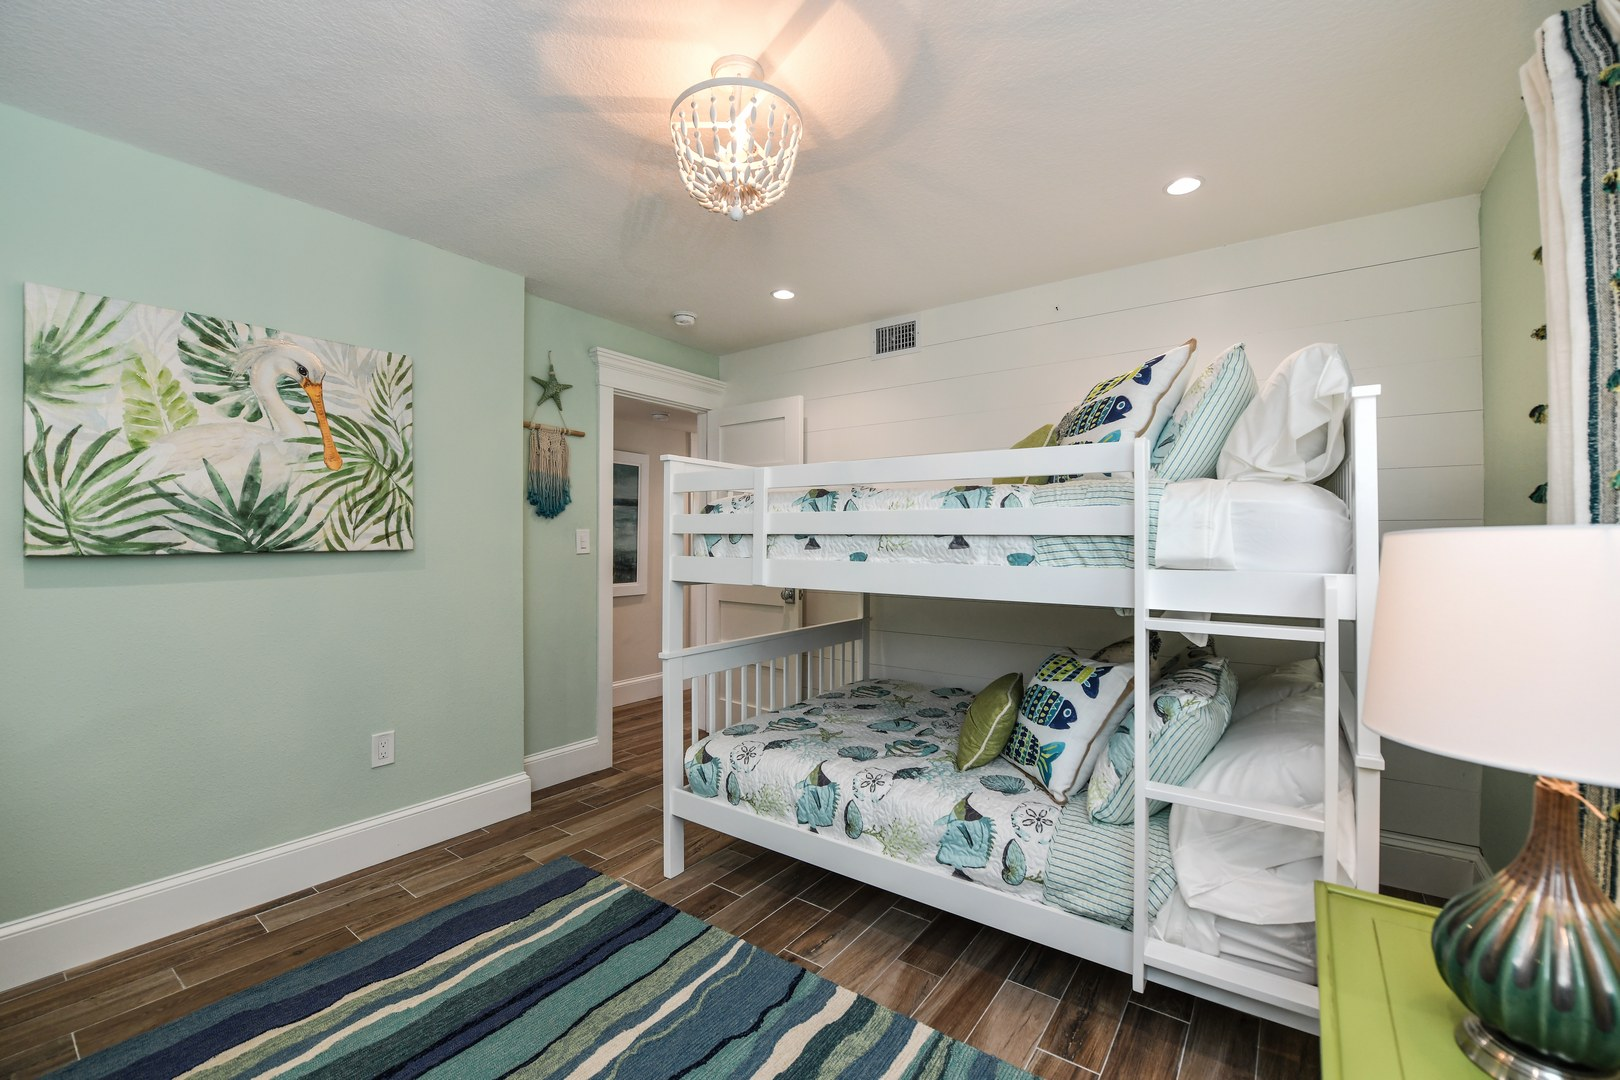 Example - Bunk bed room 2